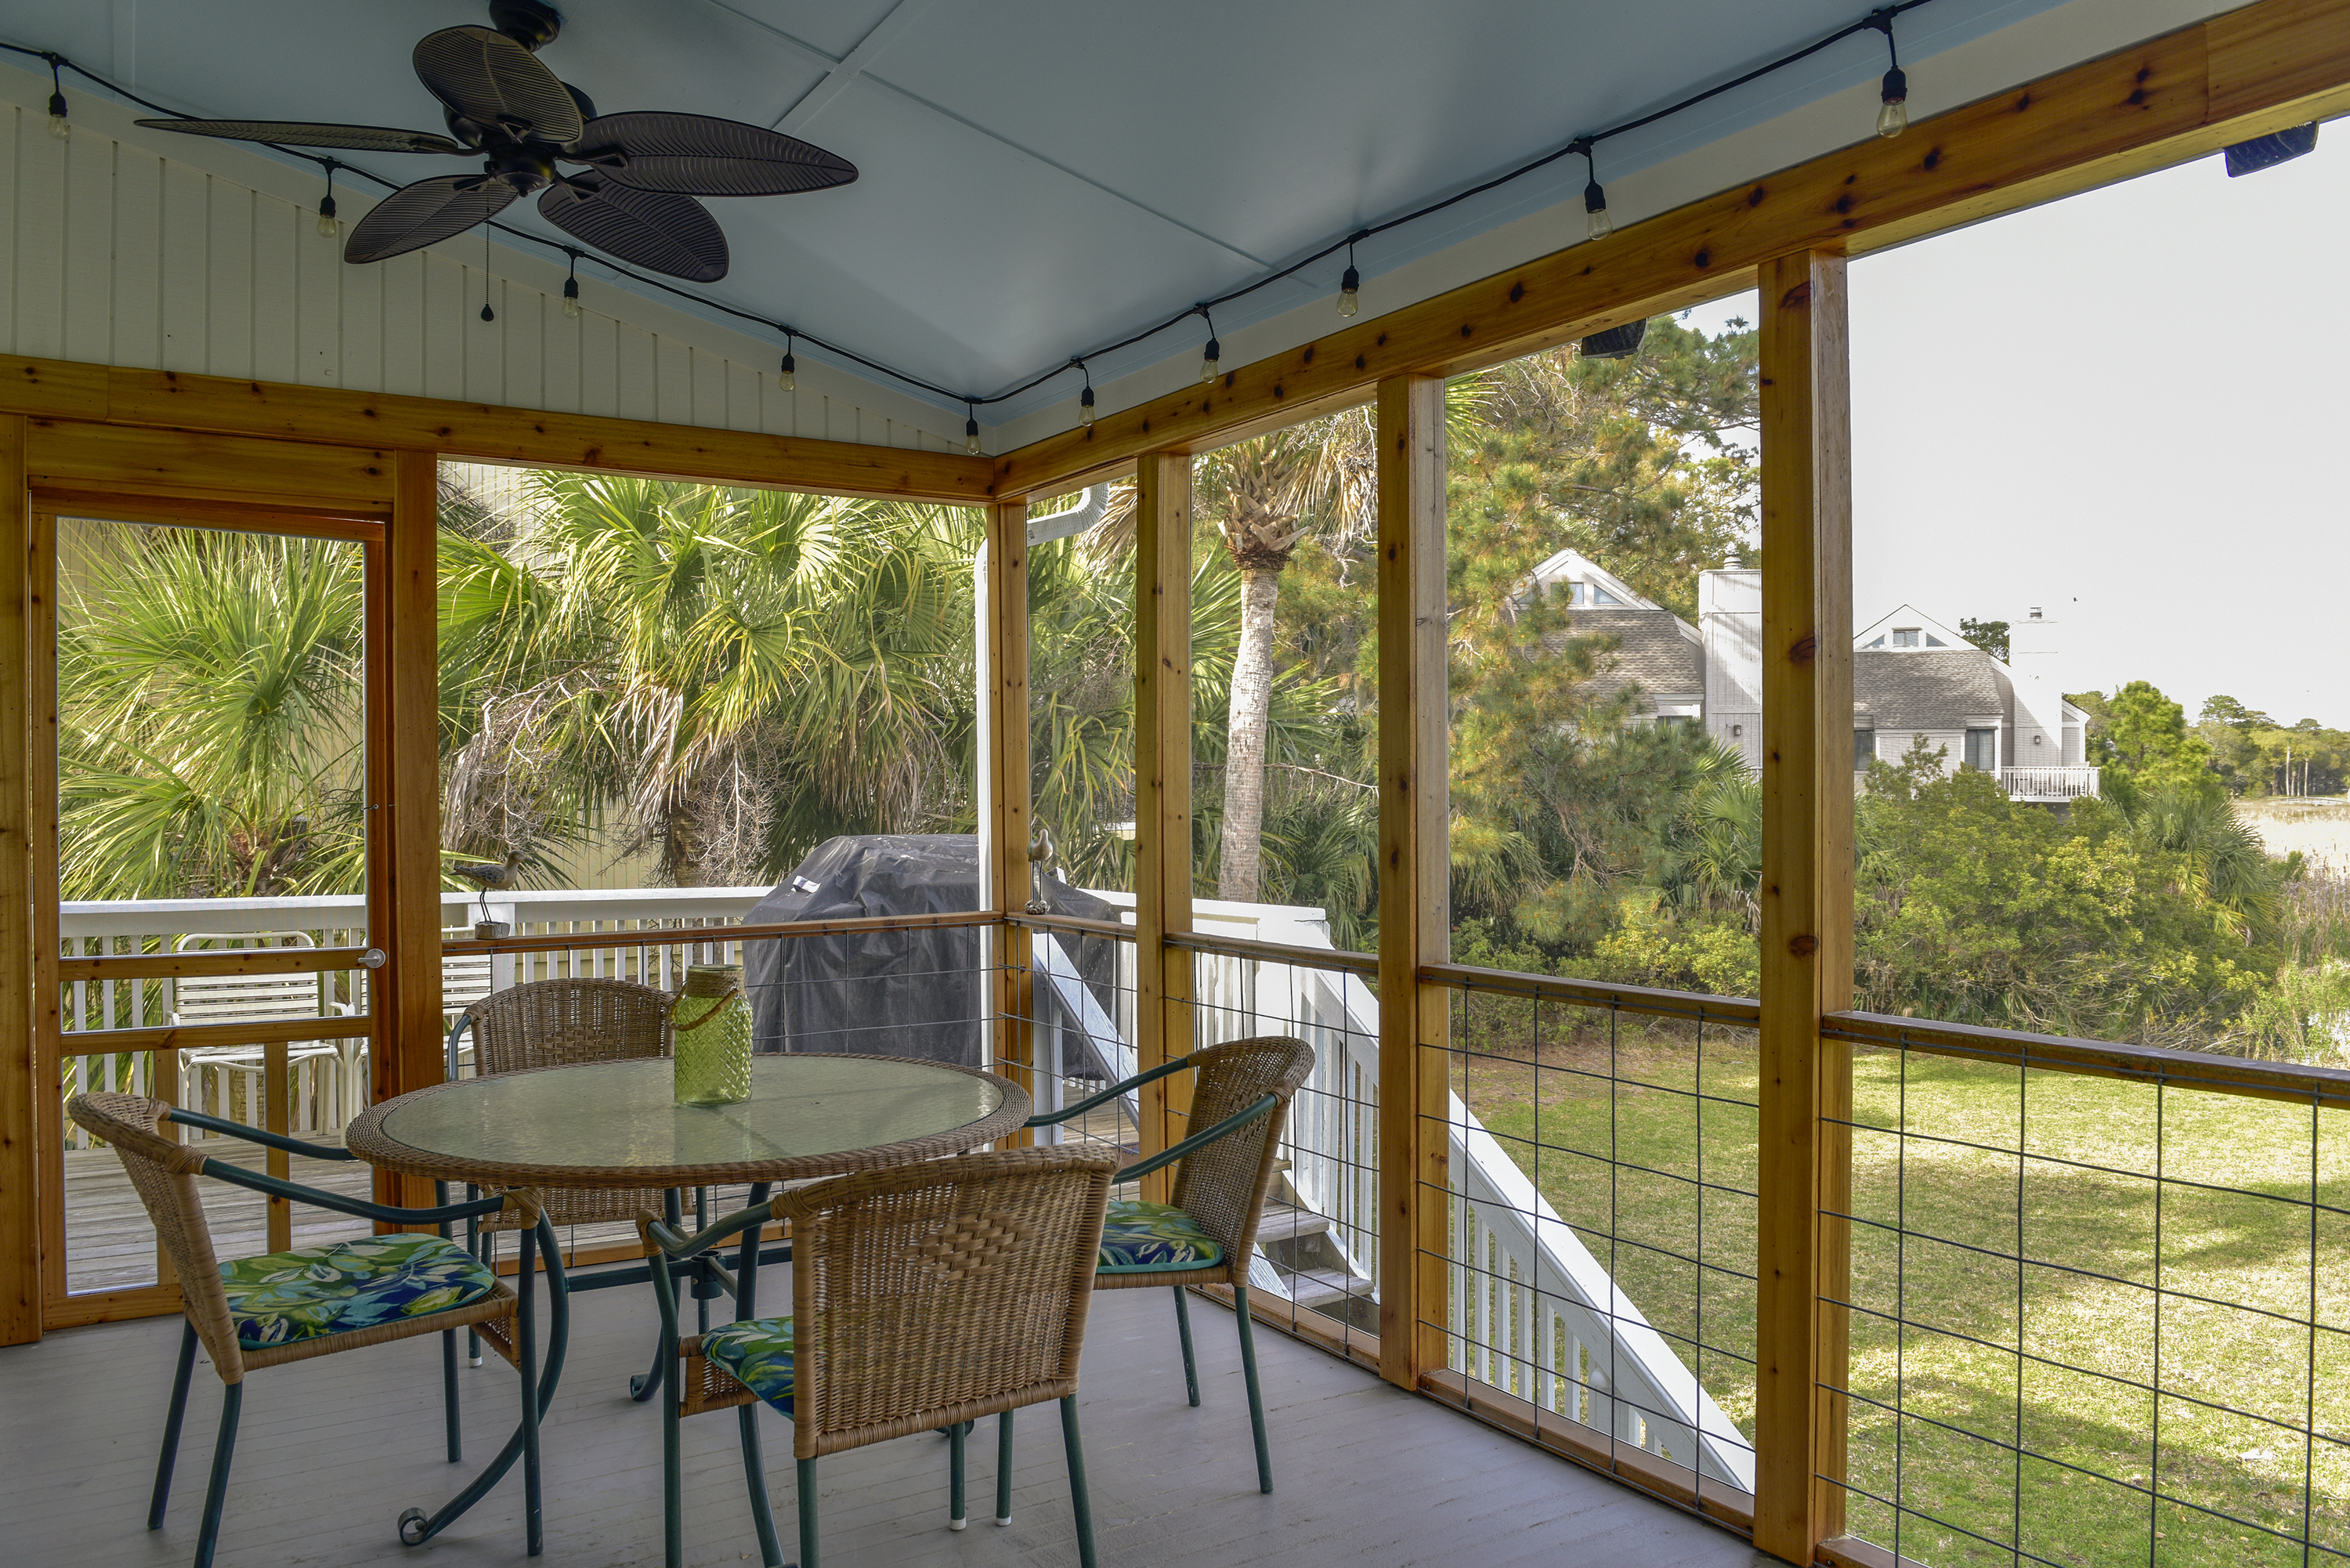 A dining table on the screen porch is the perfect spot for dinner -- additional chairs to accommodate a total of 6 people.